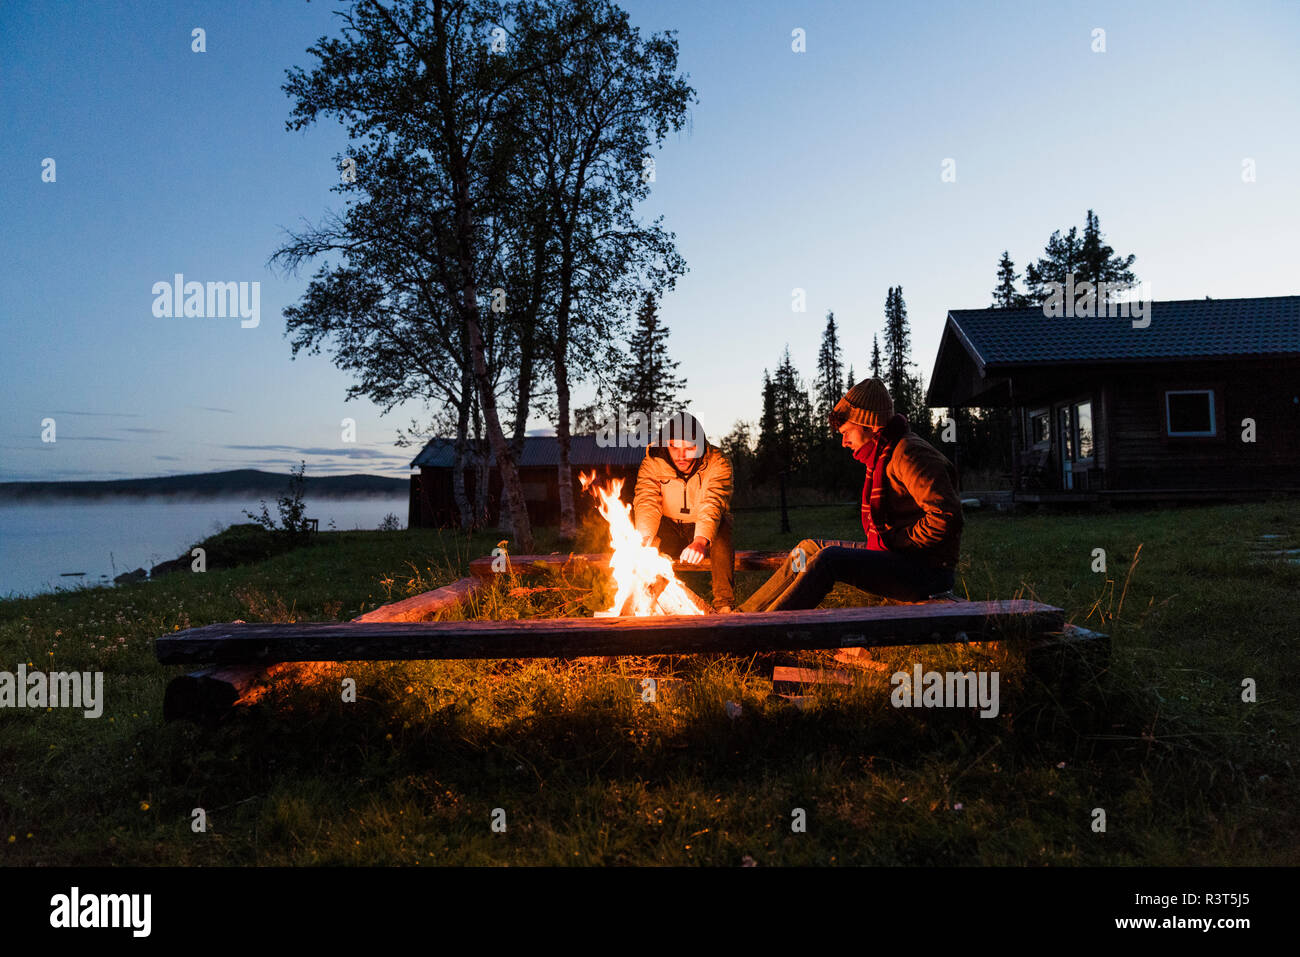 Friends sitting at a campfire, watching the flames - Stock Image